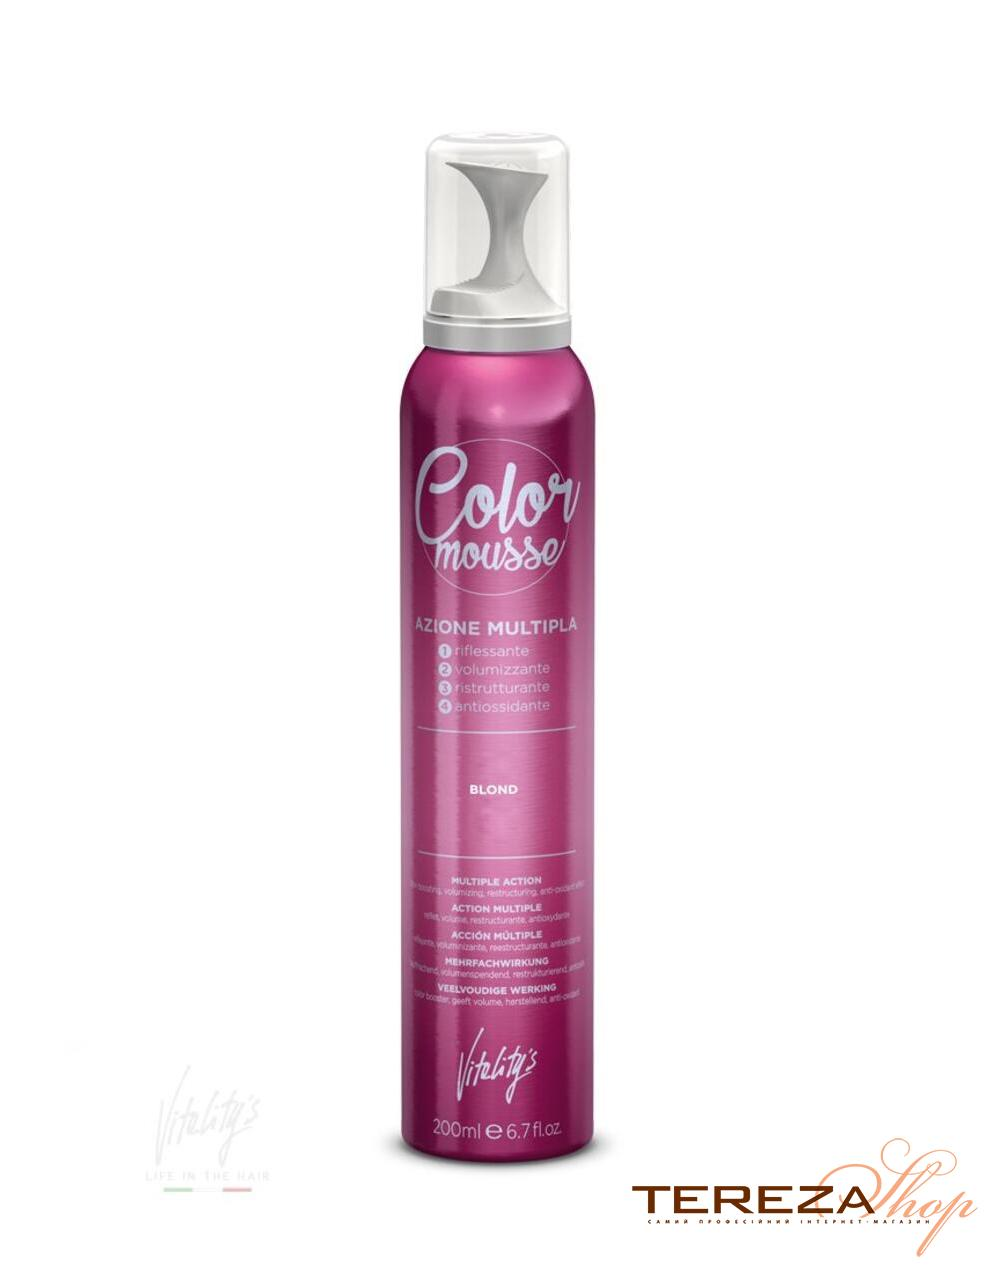 COLOR MOUSSE BLOND VITALITY'S | Tereza Shop